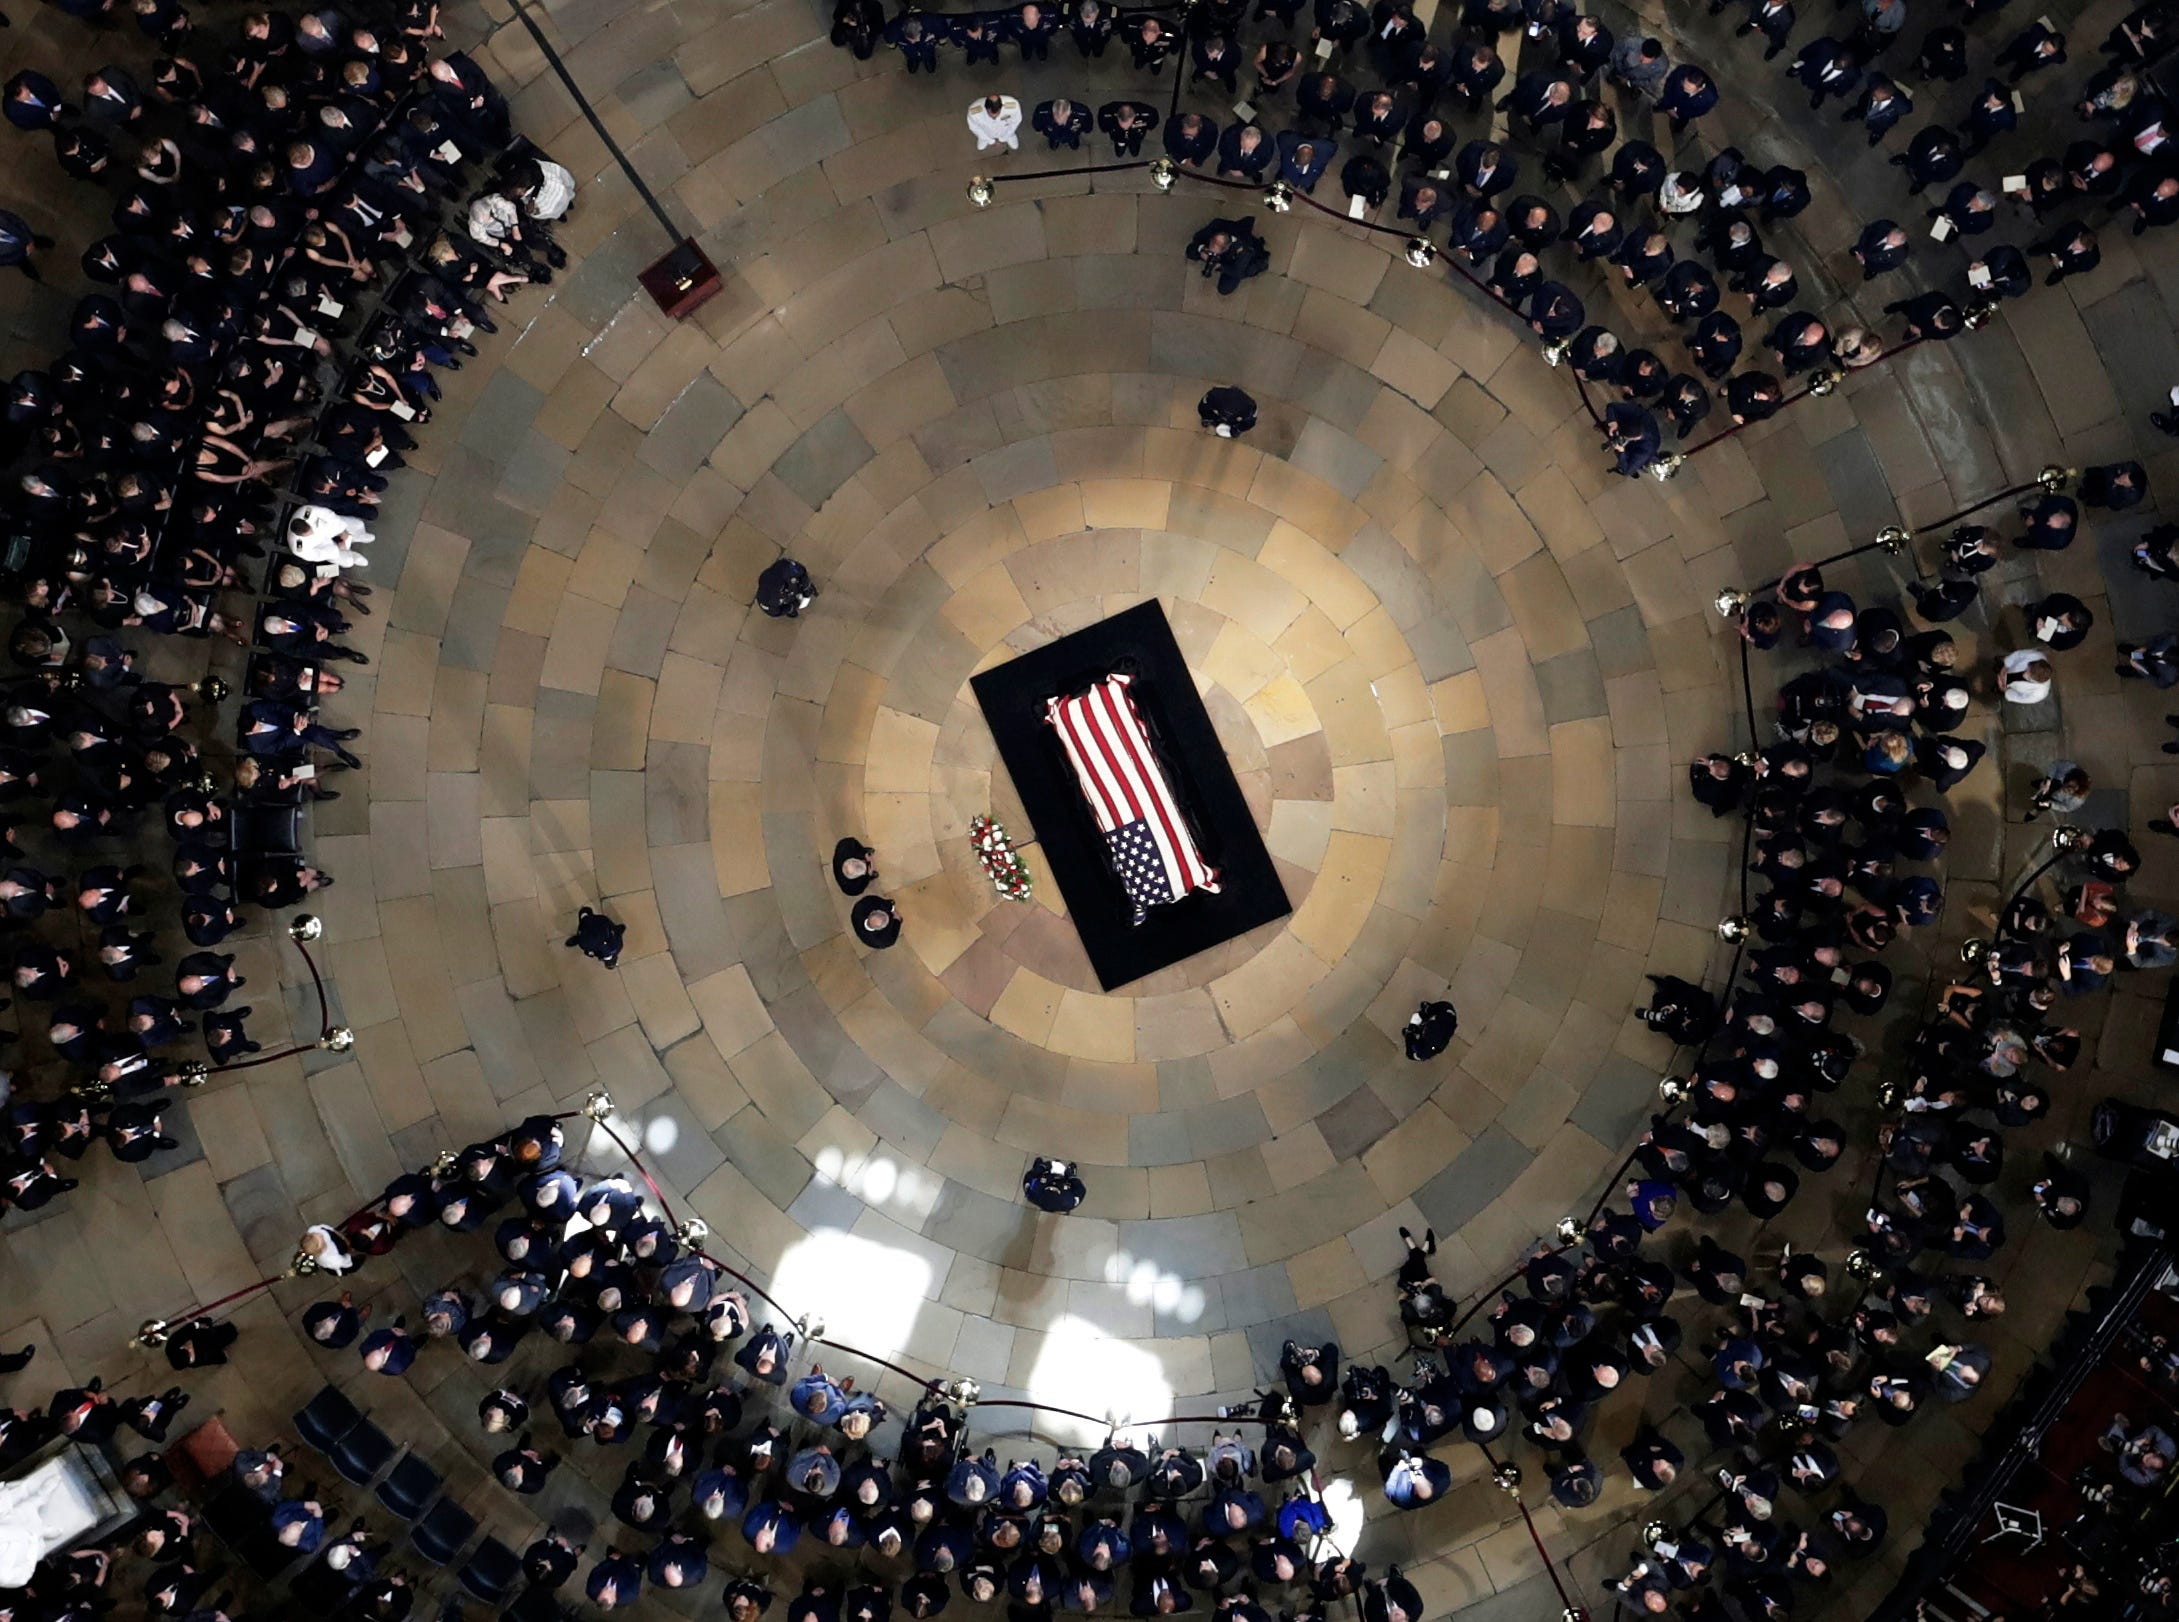 Senate leaders Mitch McConnell and Chuck Schumer stand near the casket as Sen. John McCain, R-Ariz., lies in state in the U.S. Capitol rotunda Aug. 31, 2018, in Washington.